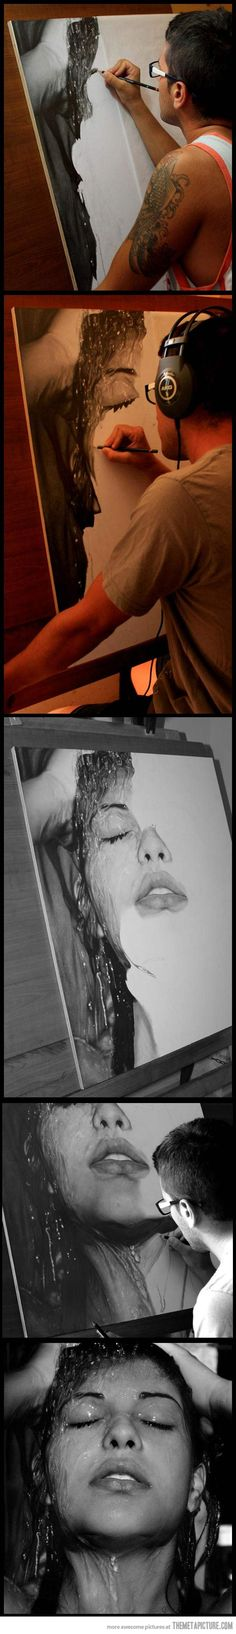 This is insanly awesome  Photorealistic pencil drawing by Diego Fazio, Italy-based artist better known as DiegoKoi